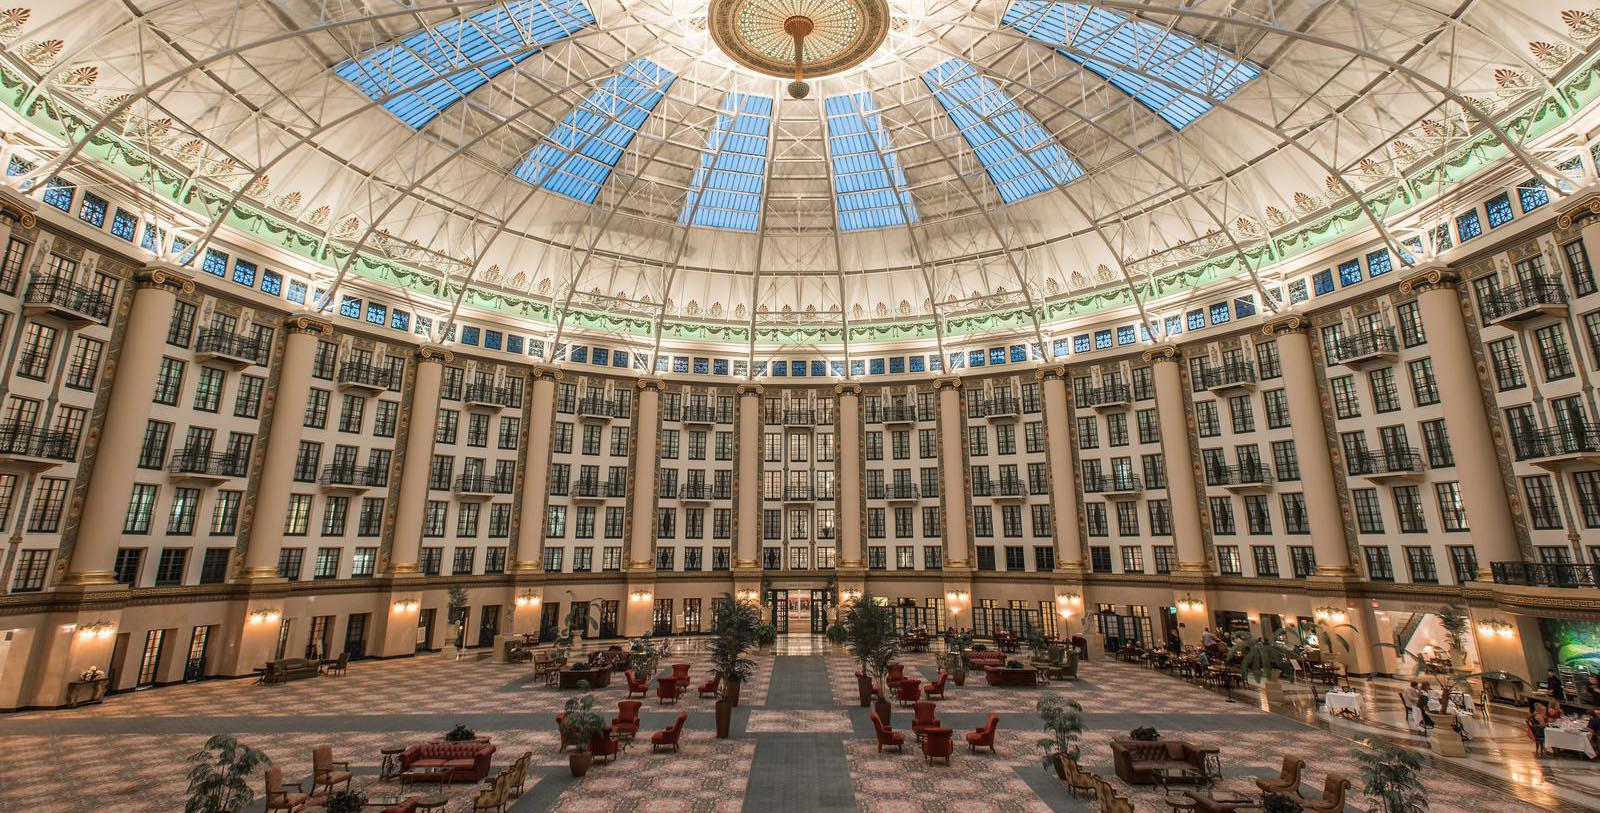 Image of dome room West Baden Springs Hotel, 1902, Member of Historic Hotels of America, in West Baden Springs, Indiana, Taste